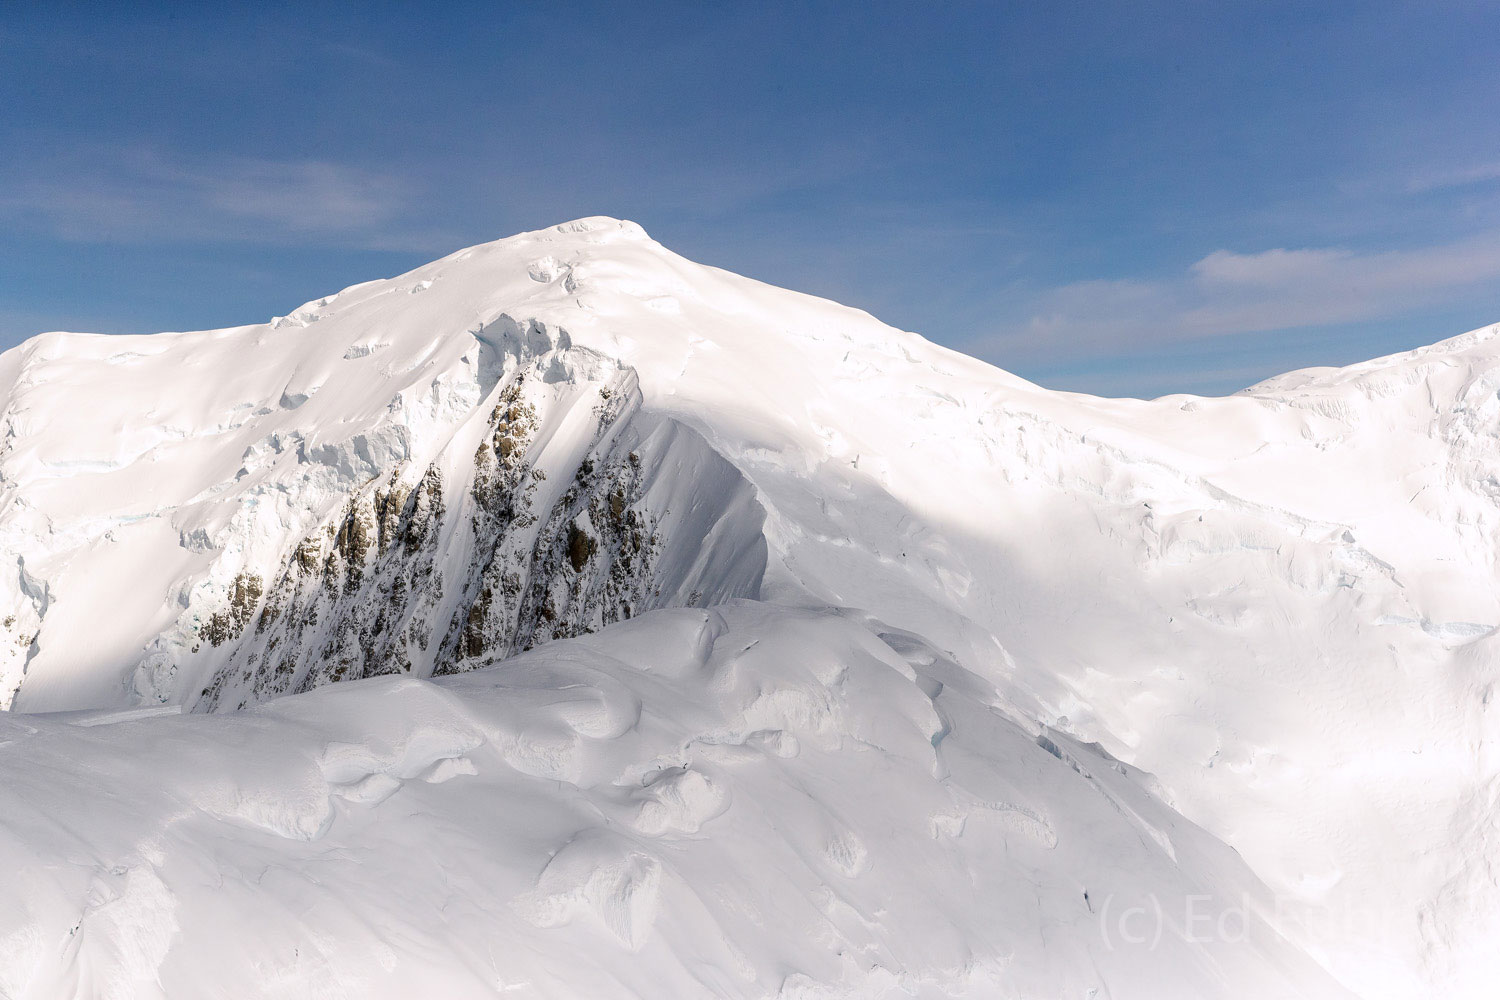 Heavy snows are loaded on the western face of the ridges leading to Denali's peaks